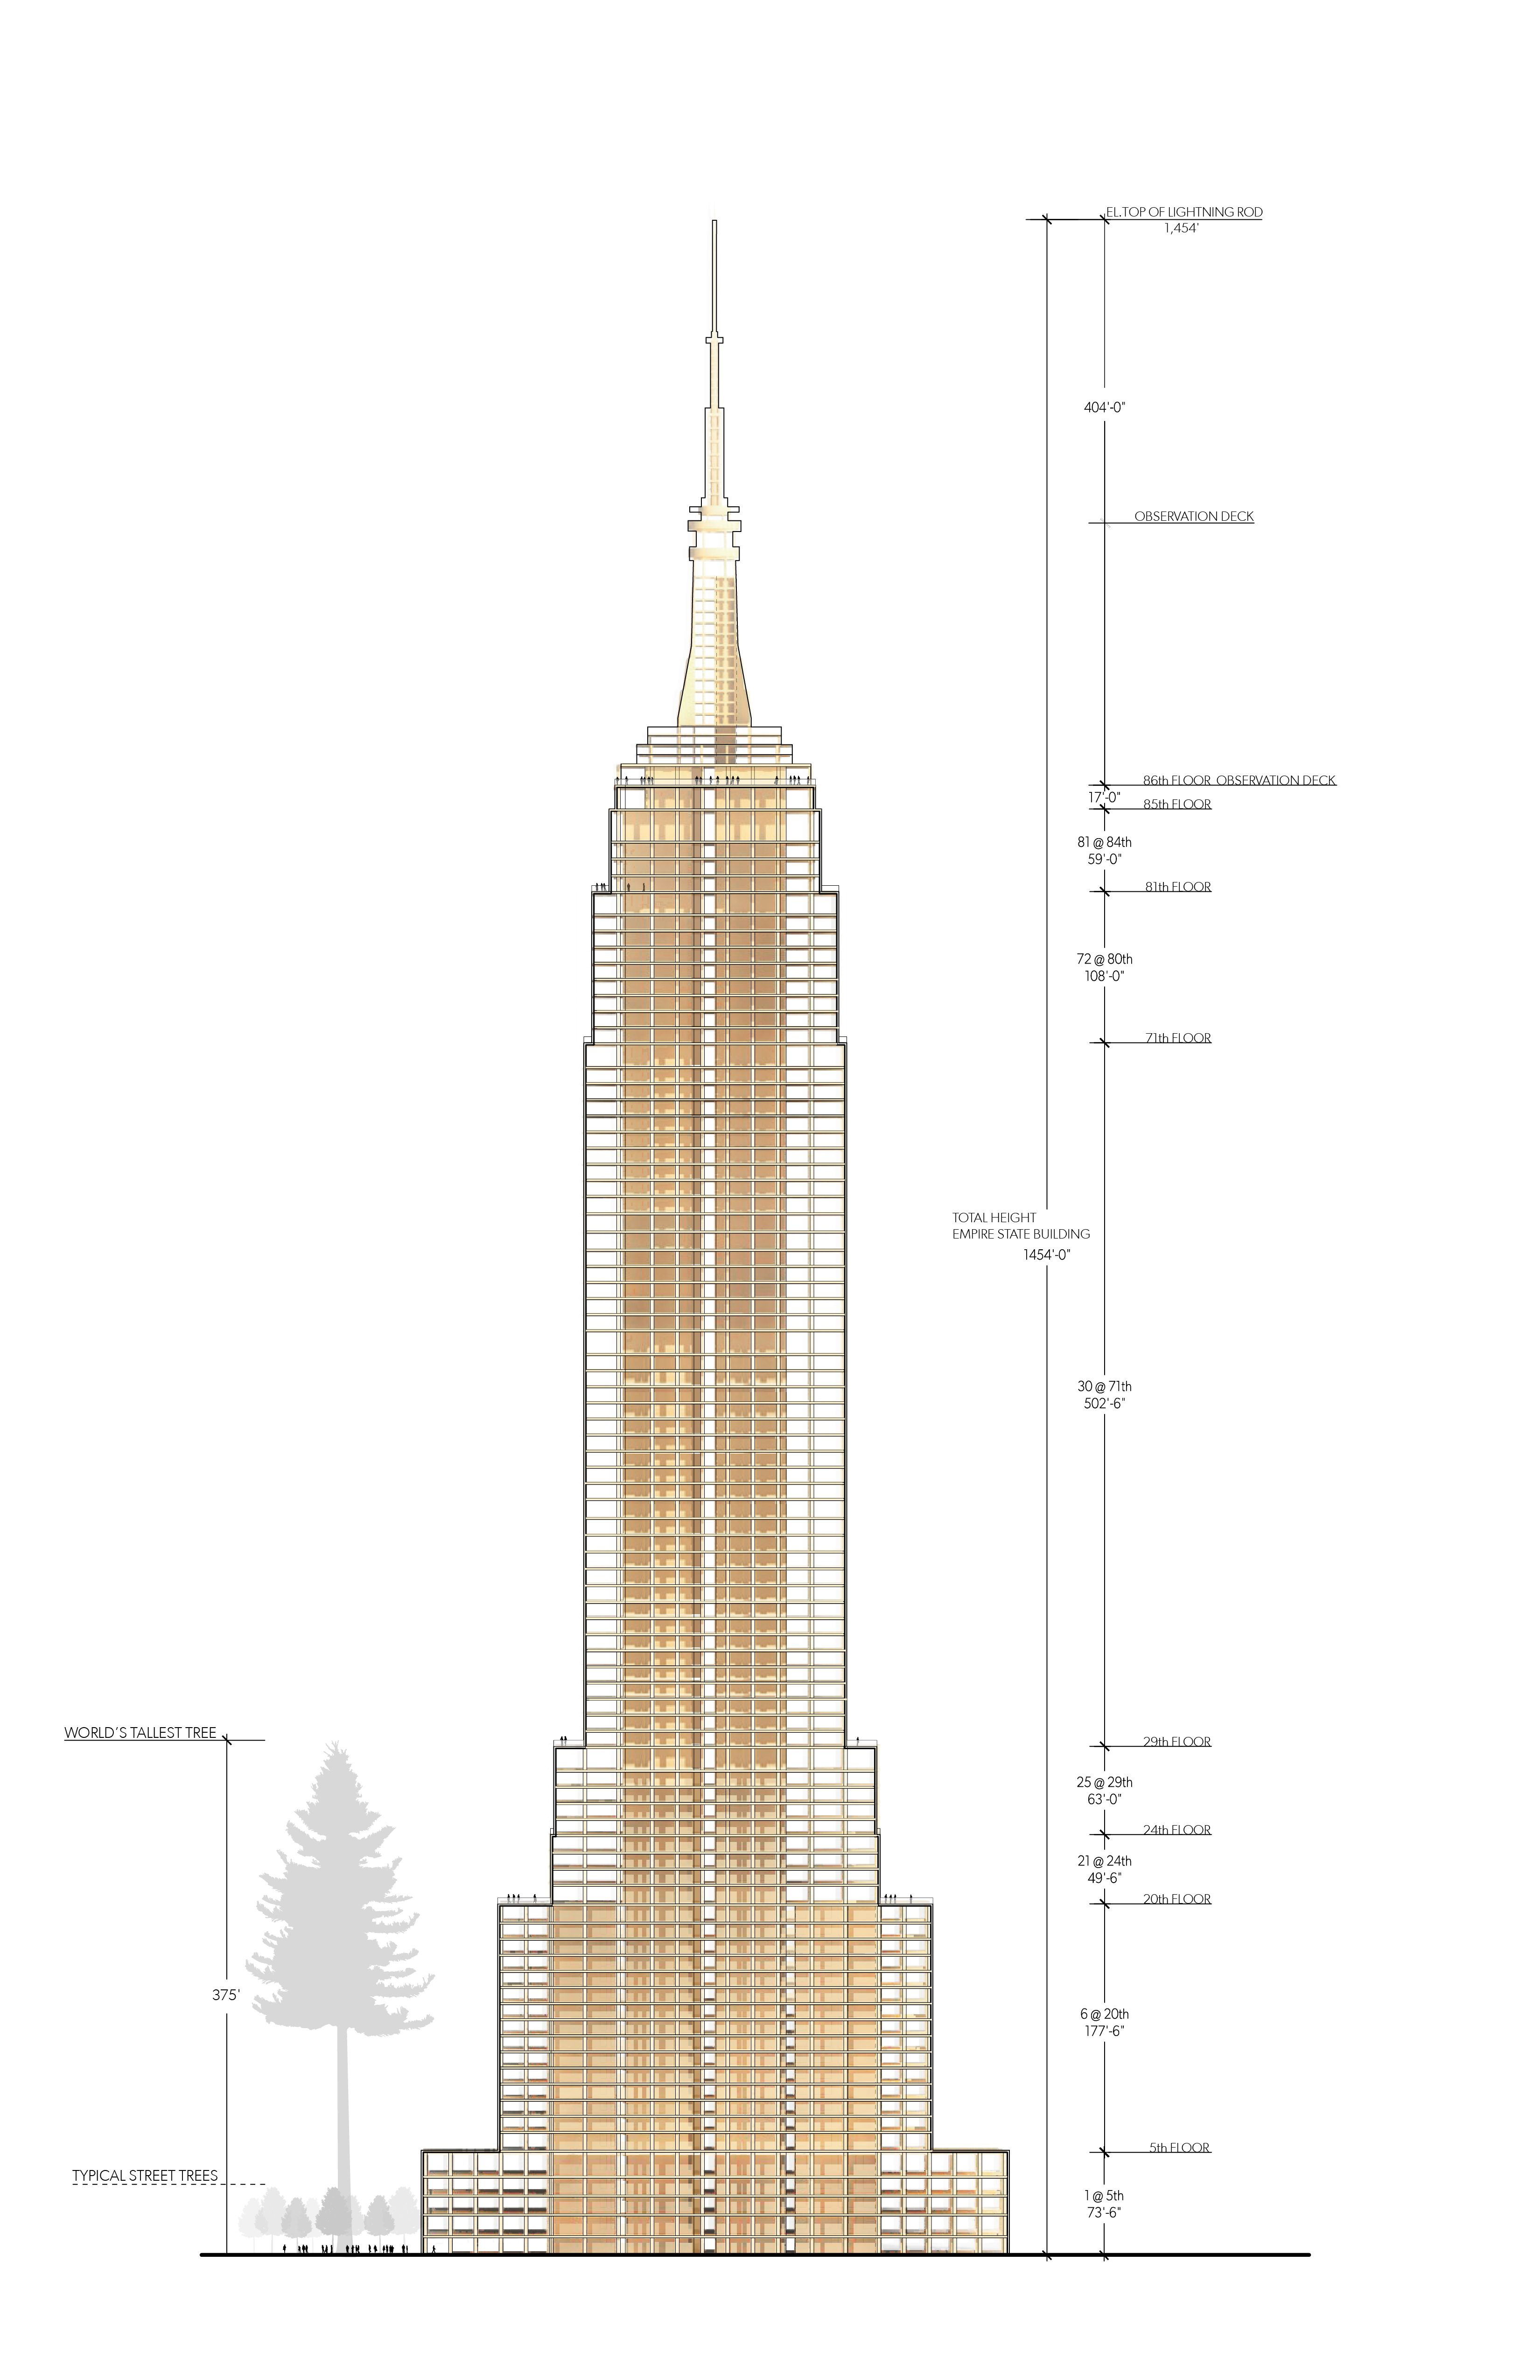 The Wooden Version Of Empire State Building By Metsa Wood Http Www Metsawood Com Planb Cases Esb Concept Html Empire State Empire State Building Building